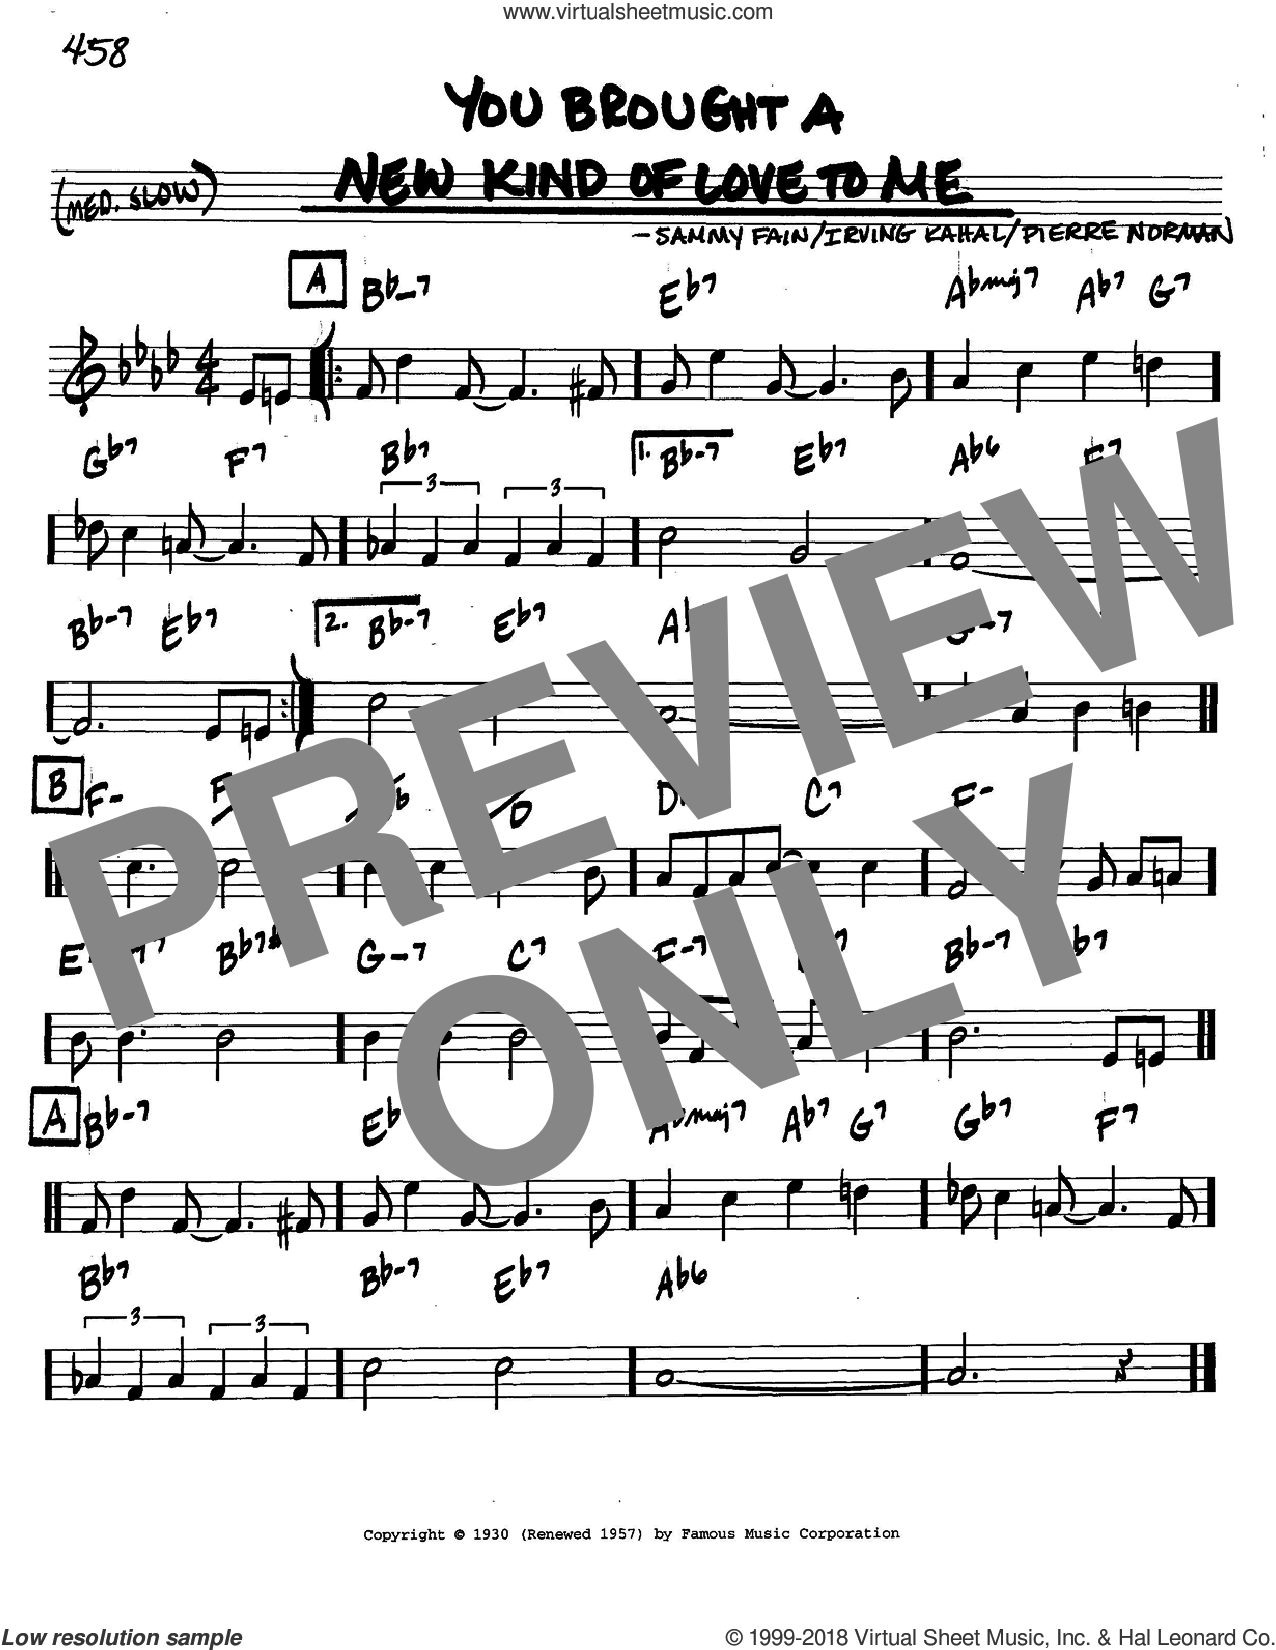 You Brought A New Kind Of Love To Me sheet music for voice and other instruments (C) by Sammy Fain, Frank Sinatra, Irving Kahal and Pierre Norman. Score Image Preview.